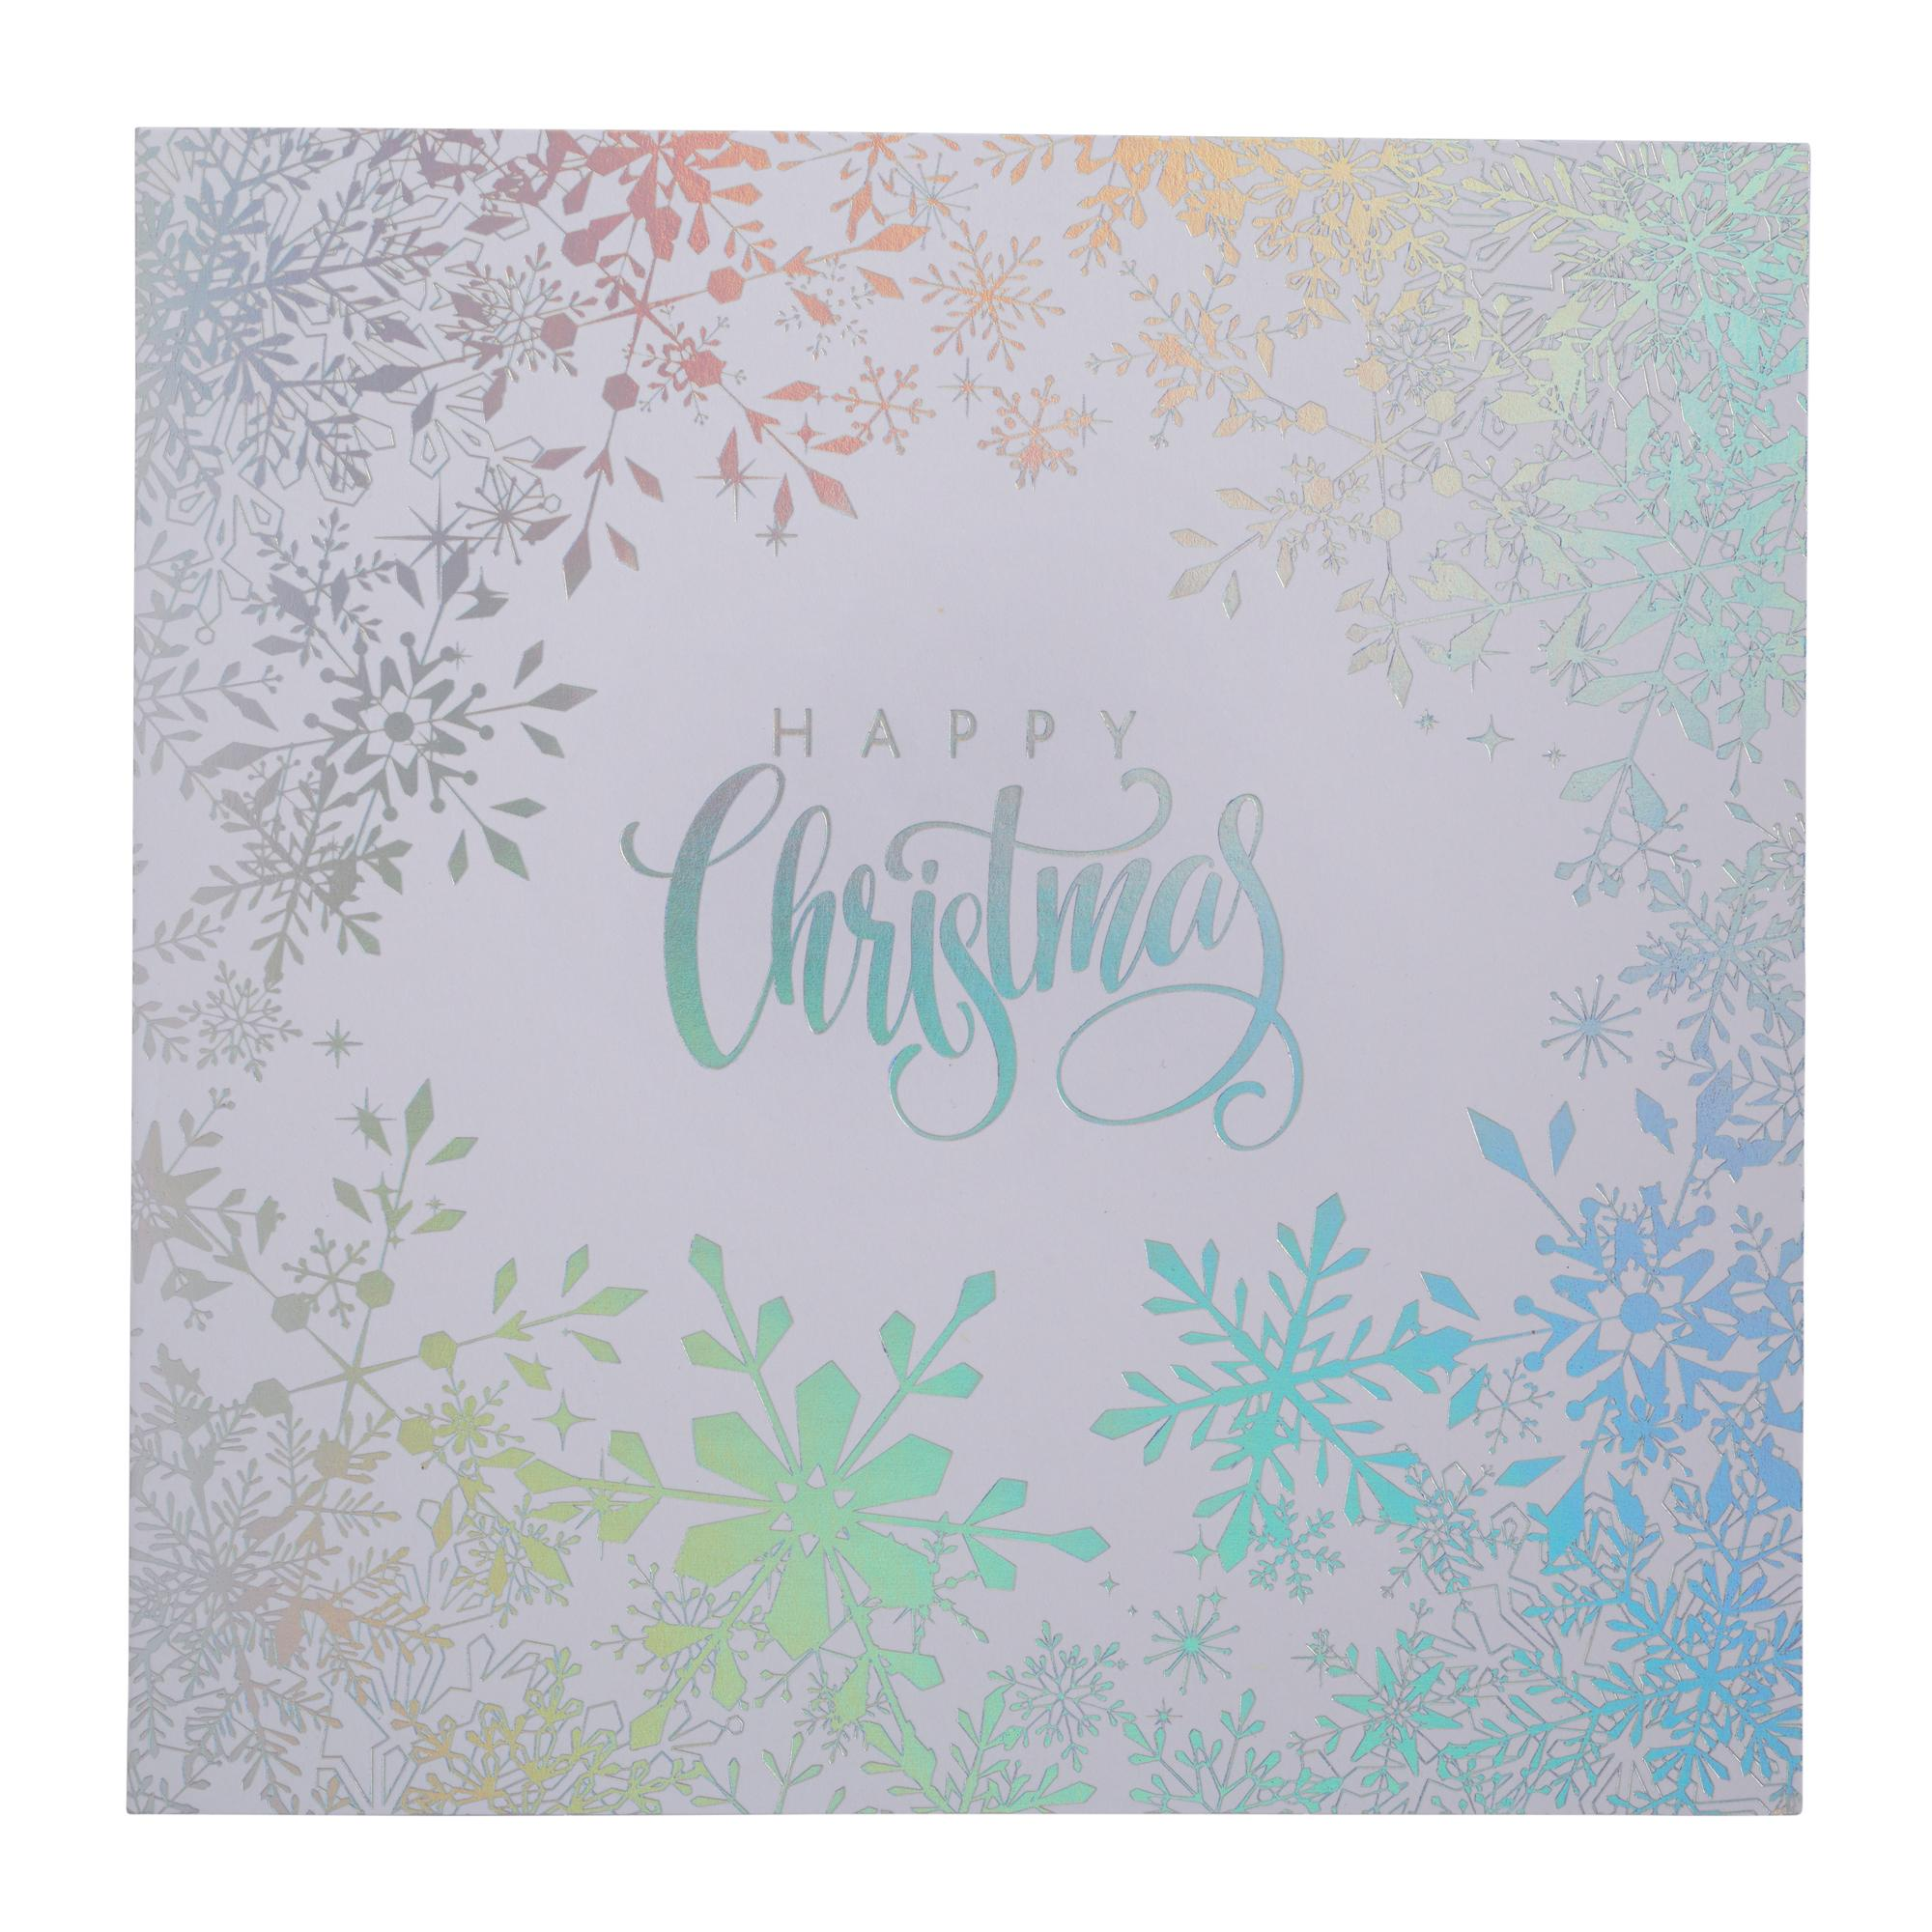 Stunning Silver Wishes Christmas Cards - Pack of 20 | Cancer ...